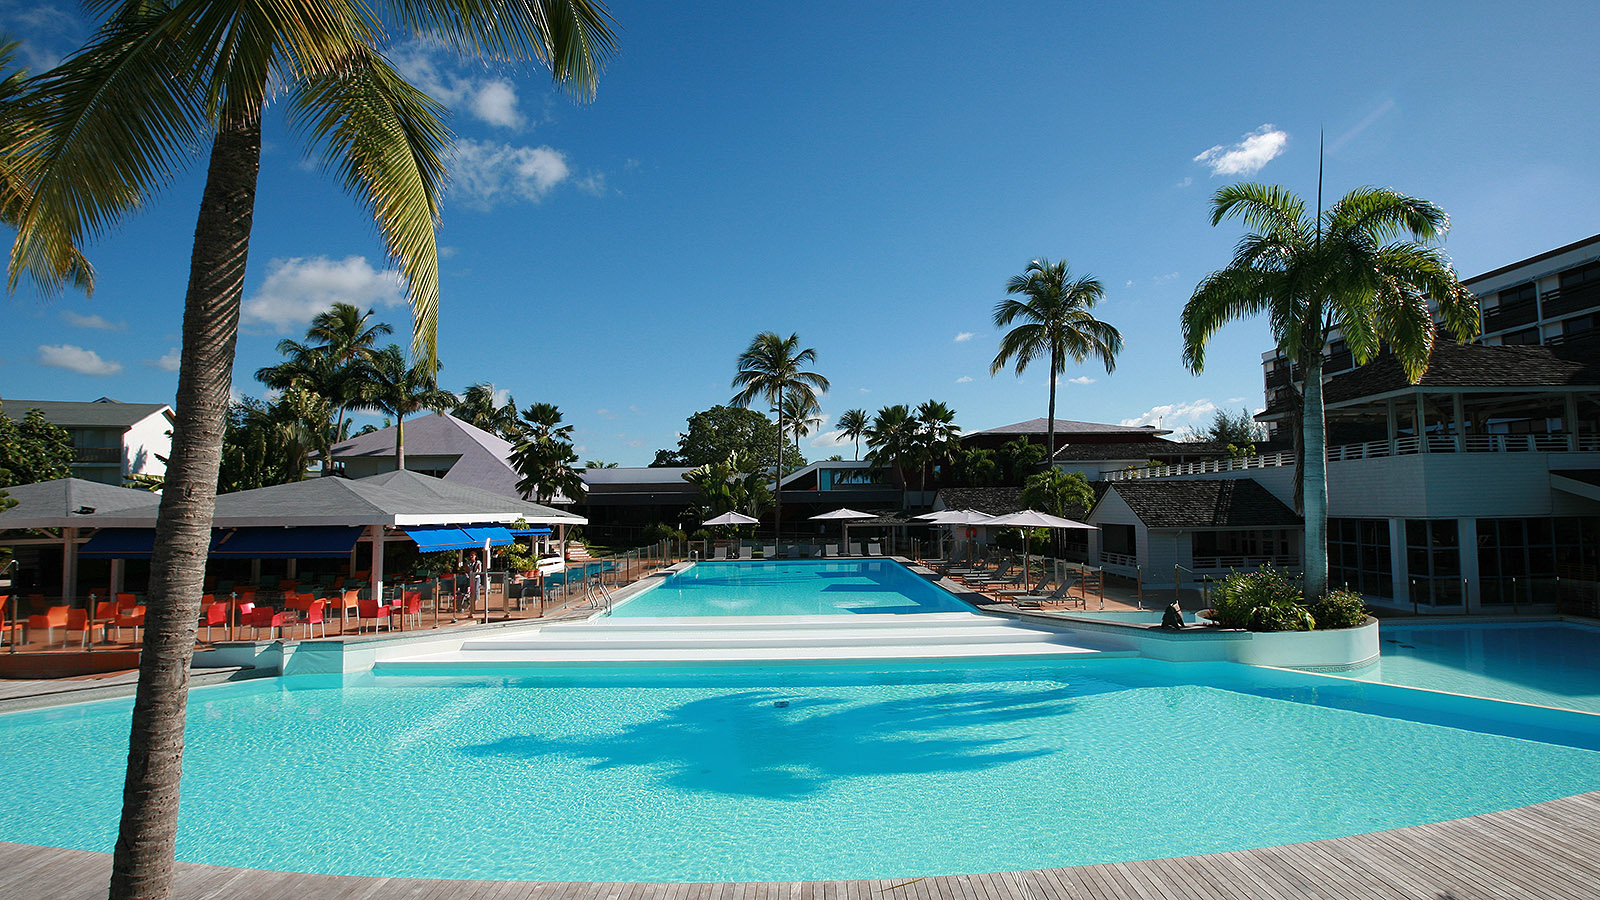 Hotel guadeloupe comment trouver son bonheur moindre prix for Hotels guadeloupe